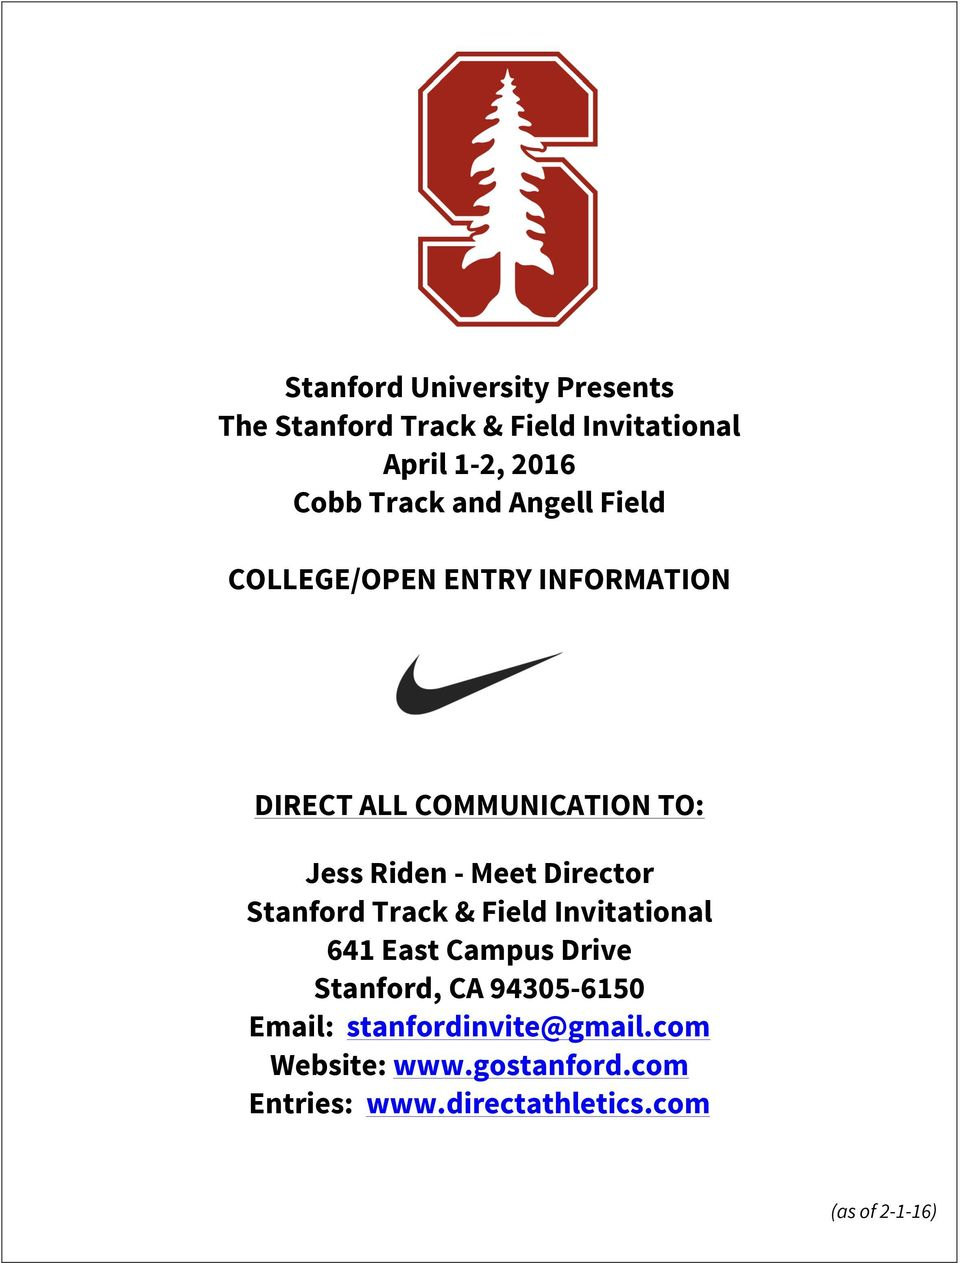 Director Stanford Track & Field Invitational 641 East Campus Drive Stanford, CA 94305-6150 Email: